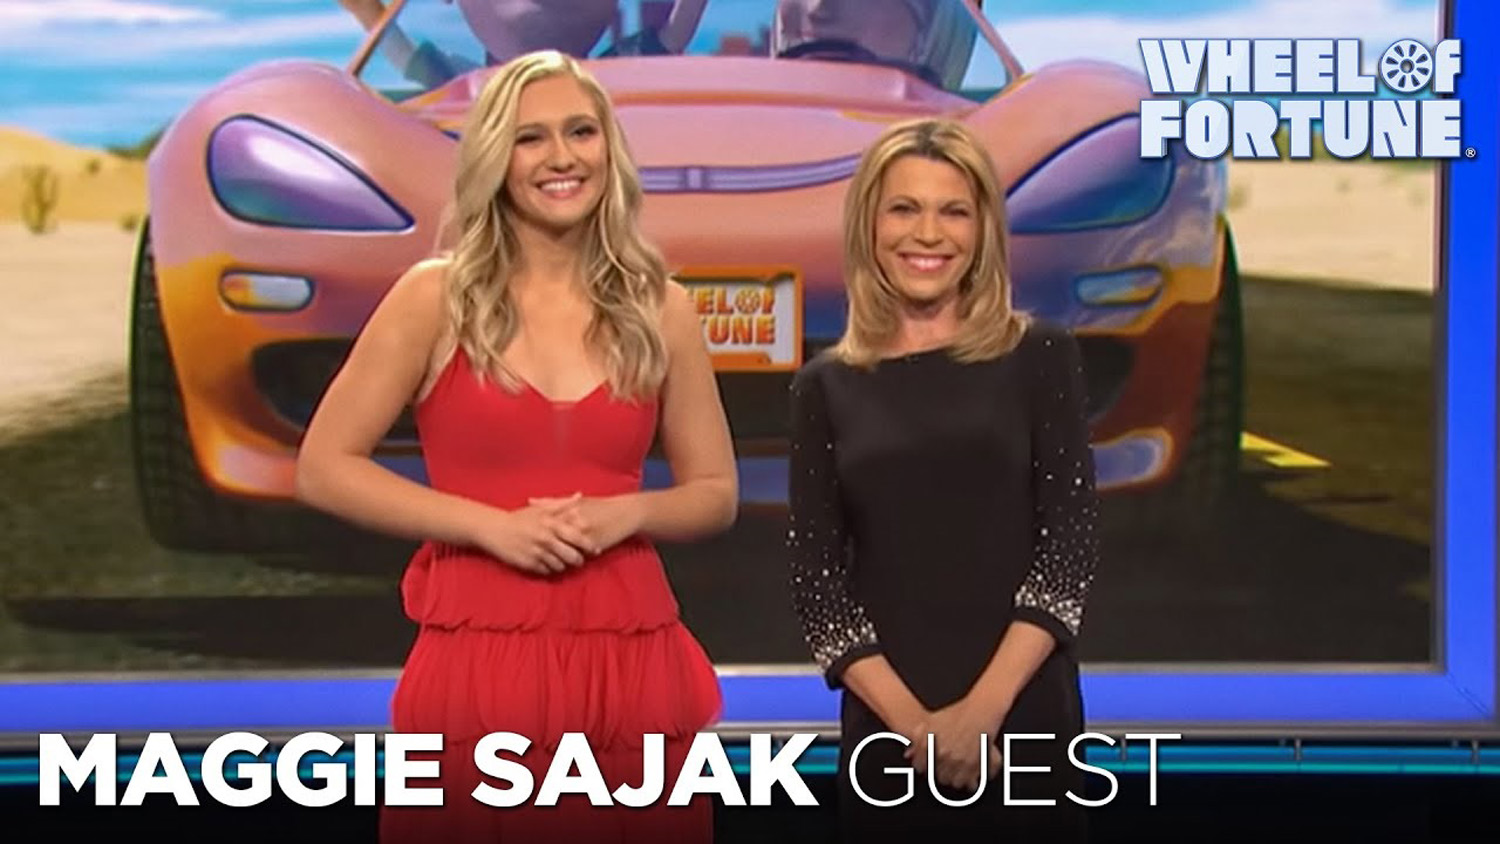 Maggie Sajak Introduced as the Special Guest Letter-Turner for Weekend Getaways | Wheel of Fortune